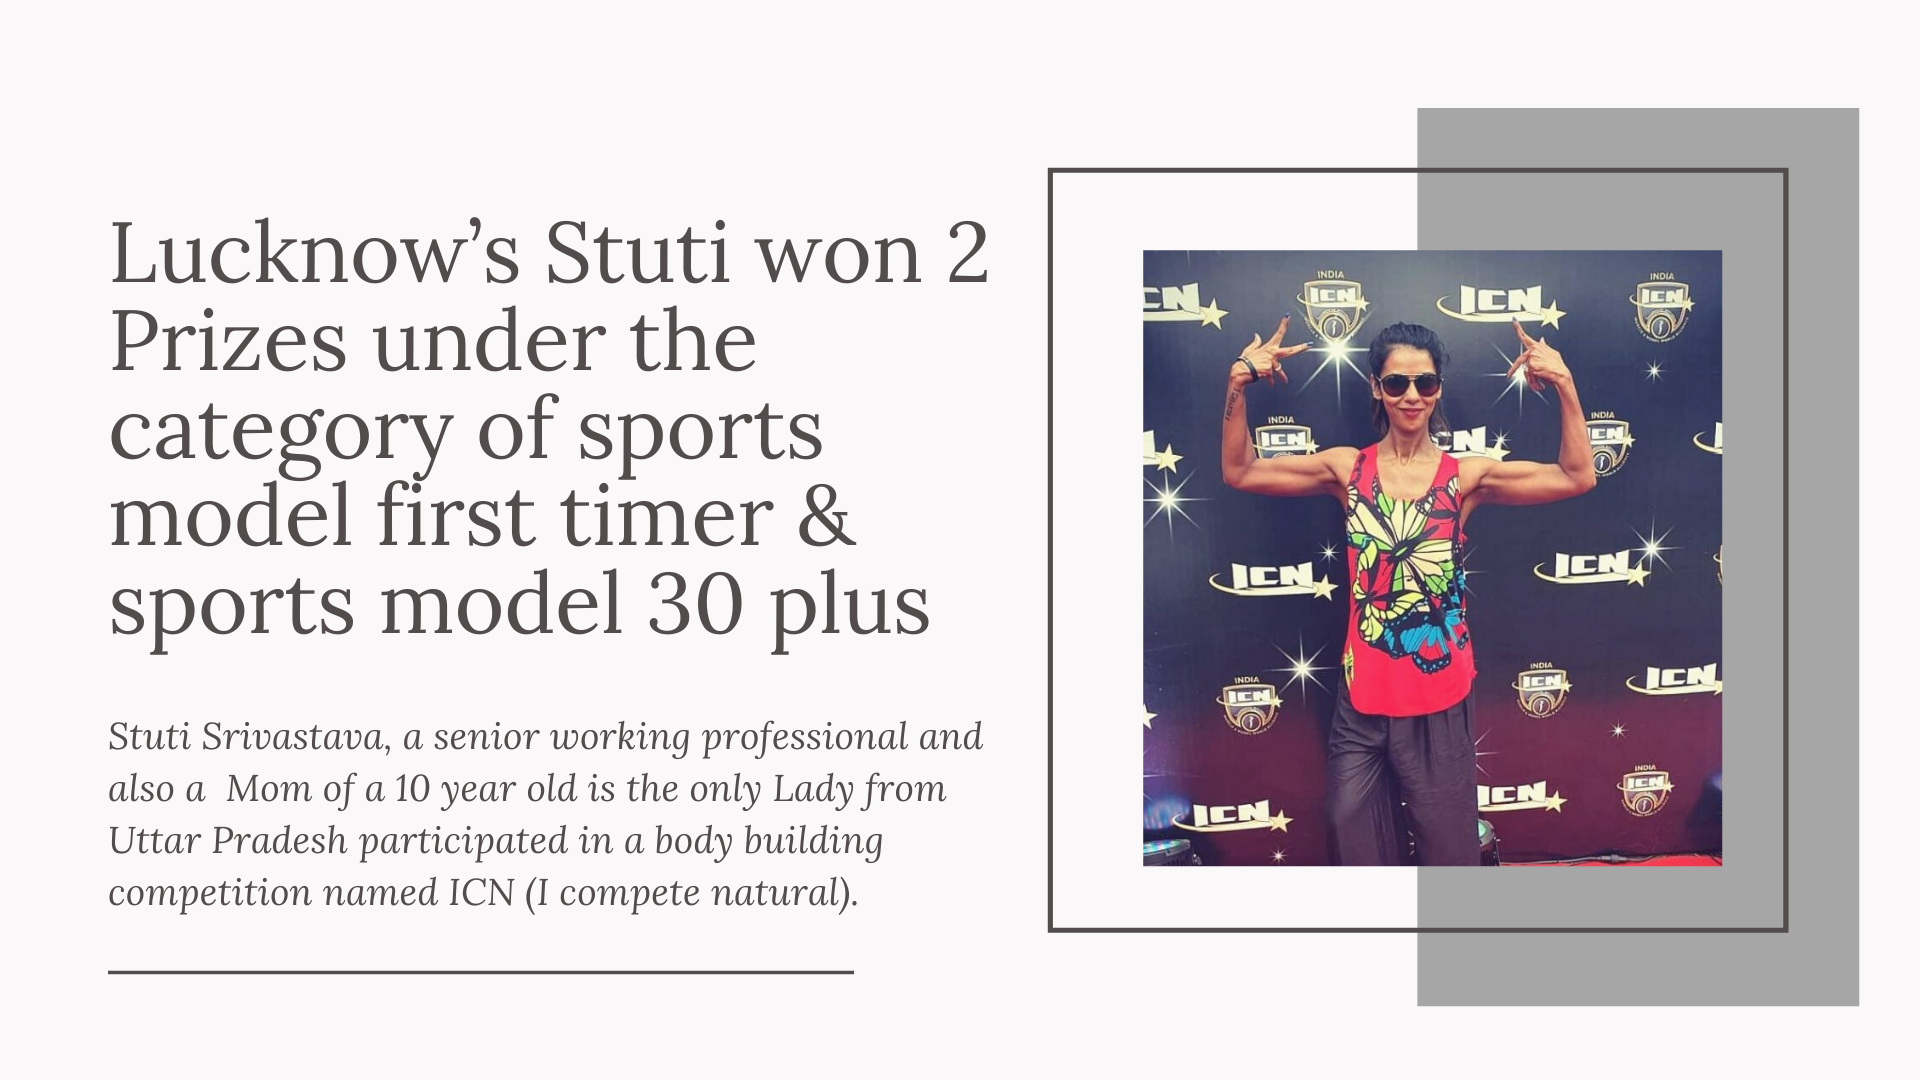 Lucknow's Stuti won 2 Prizes under the category of sports model first timer & sports model 30 plus